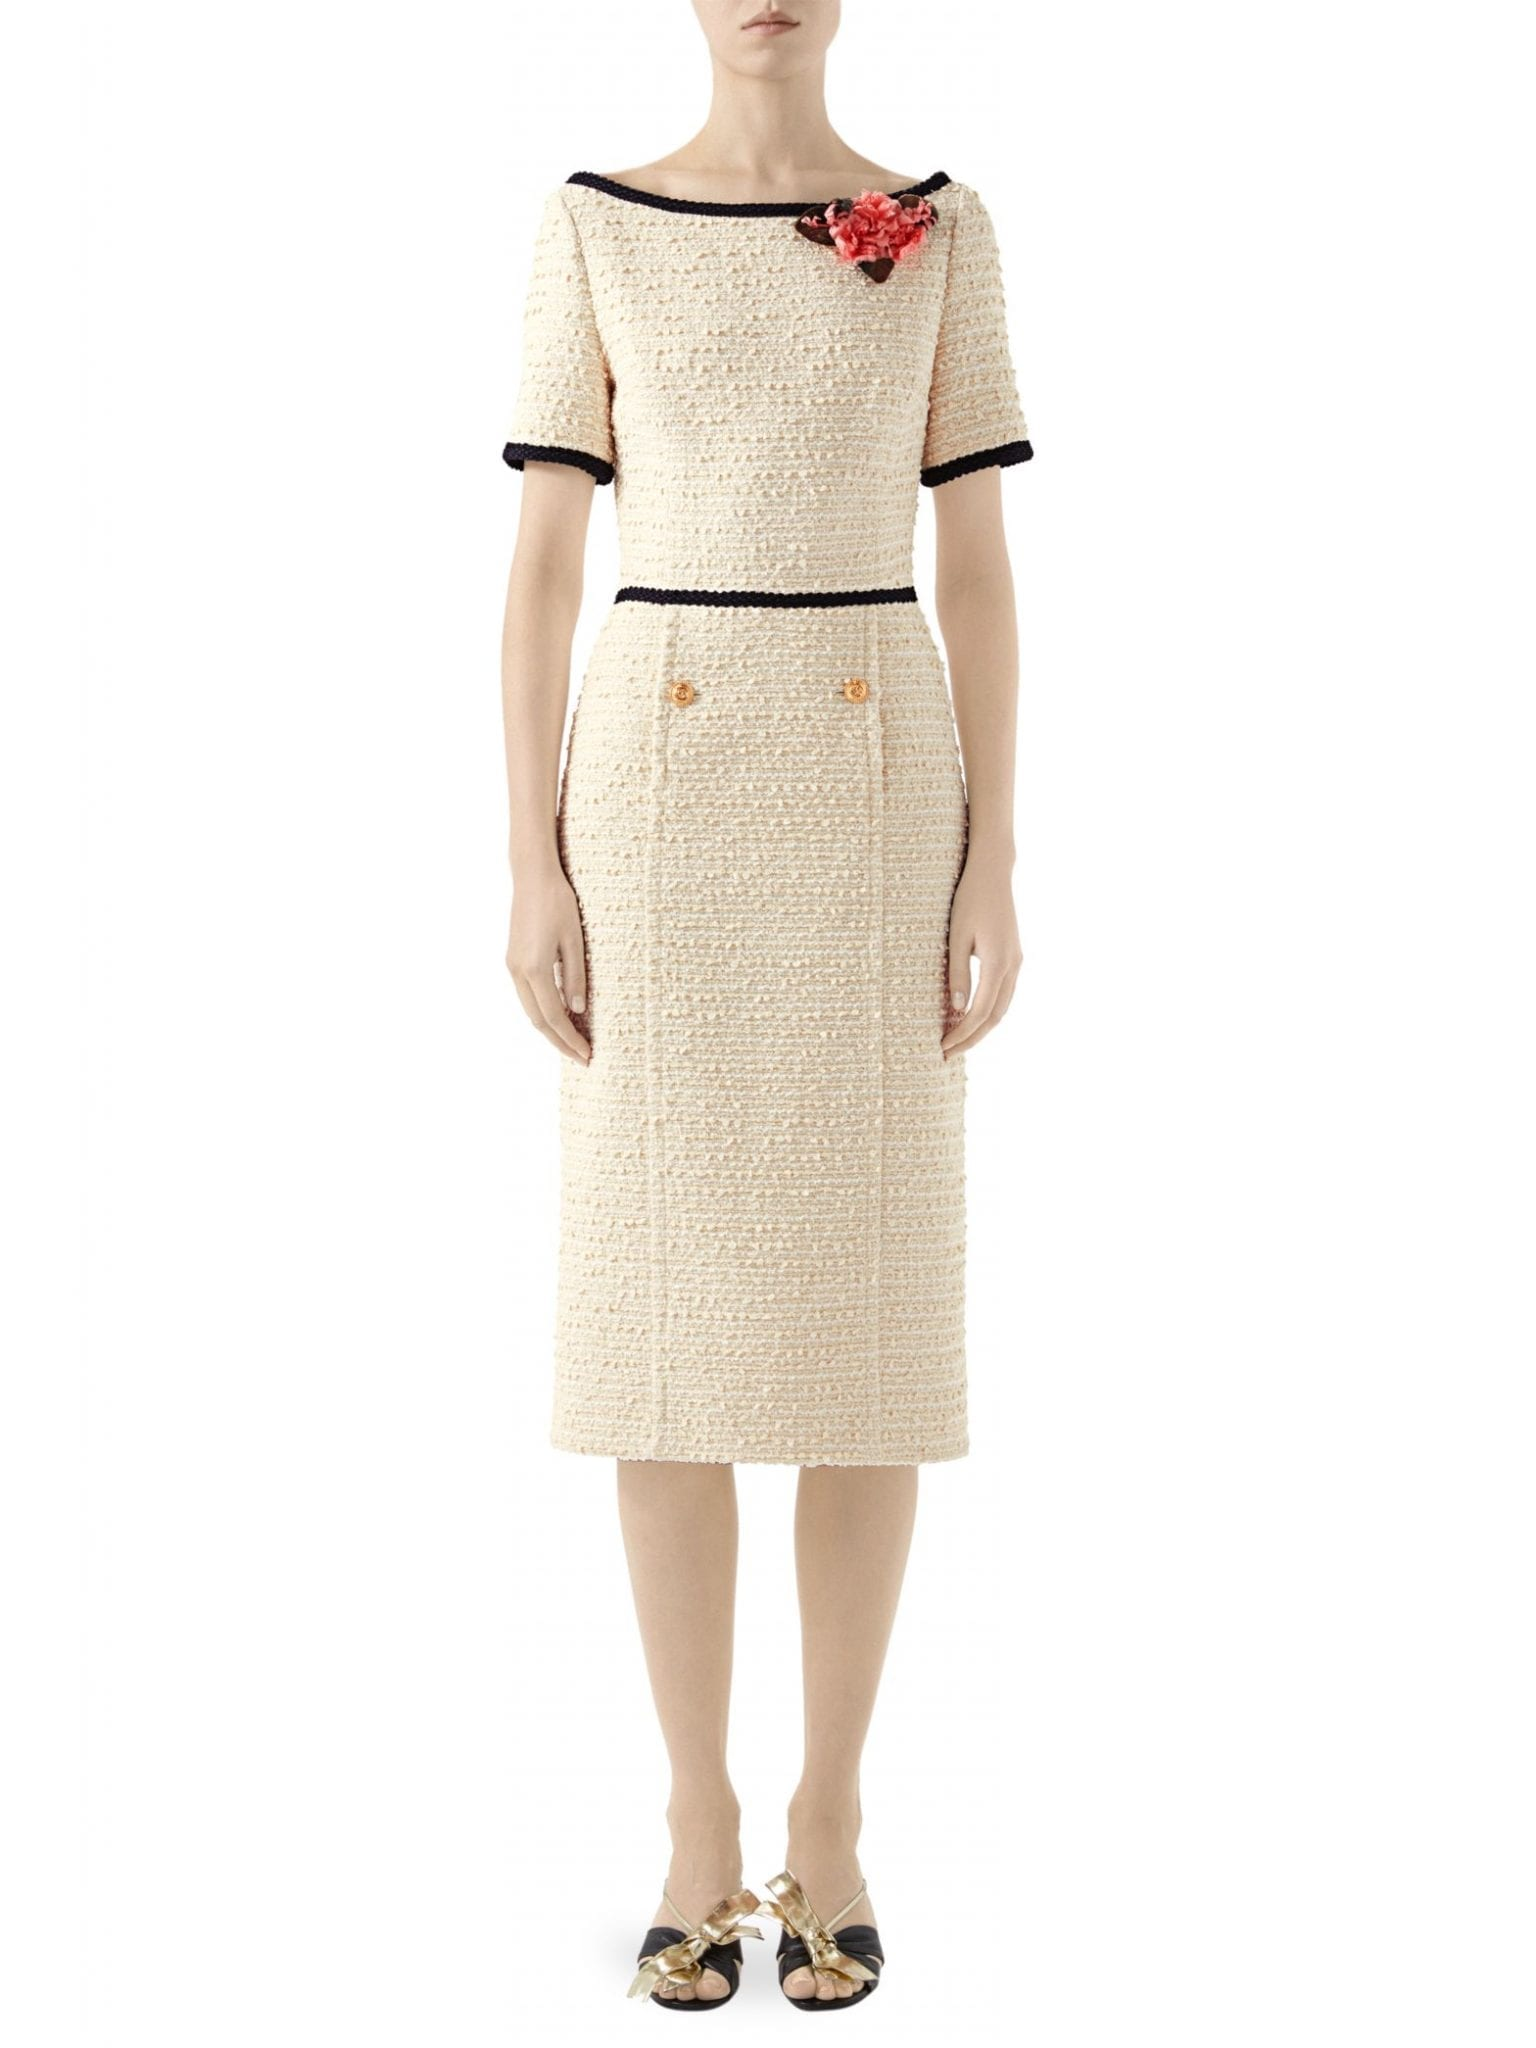 GUCCI Sylvie Boucle Tweed Boatneck Dress